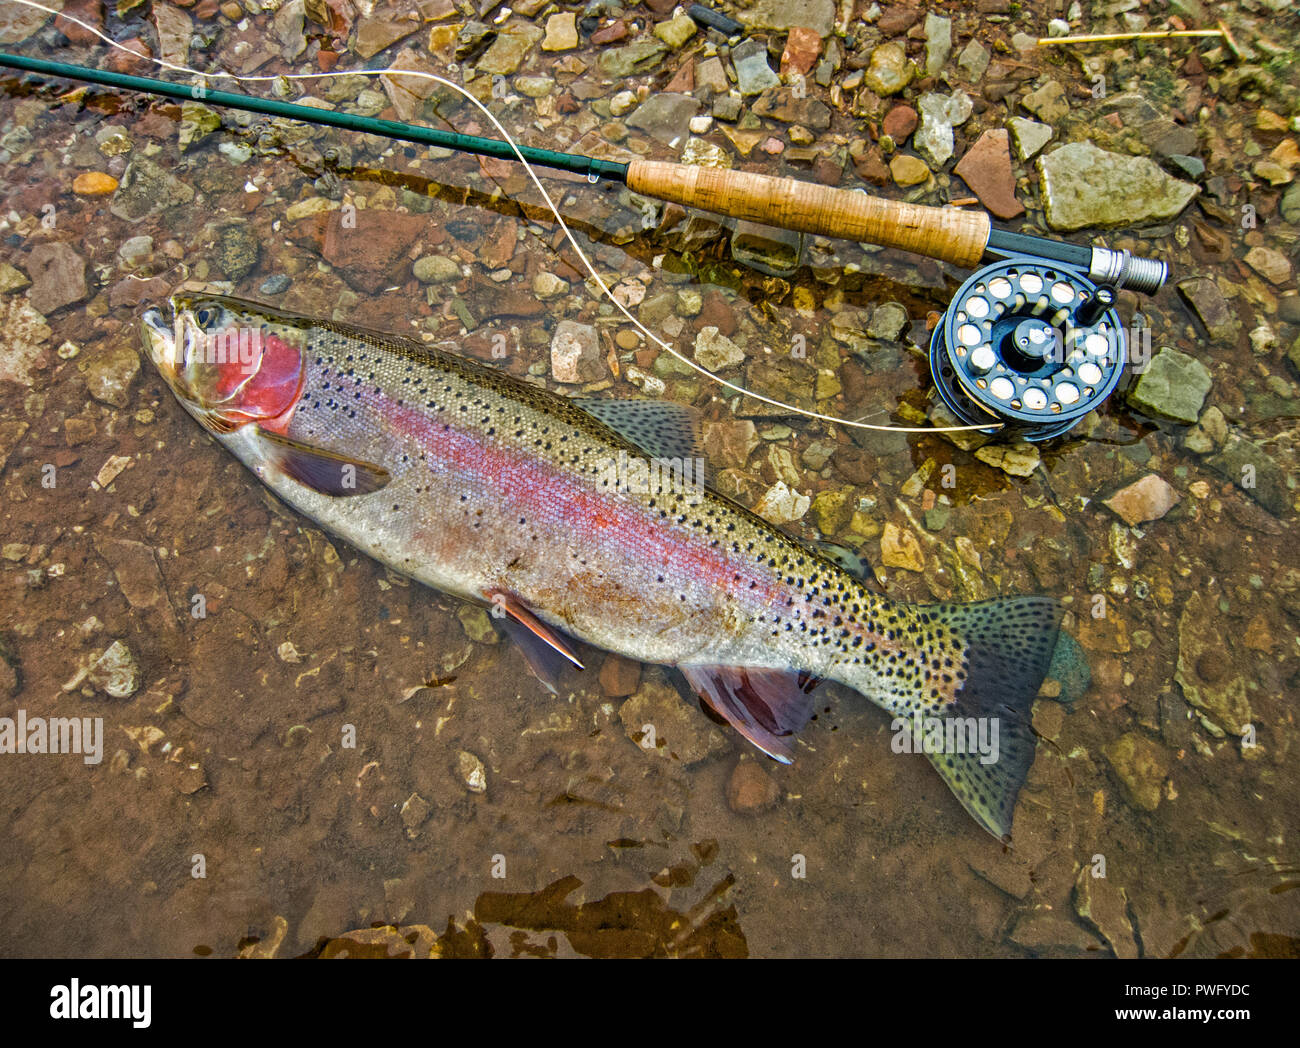 Freshwater fly fishing for trout and salmon. - Stock Image